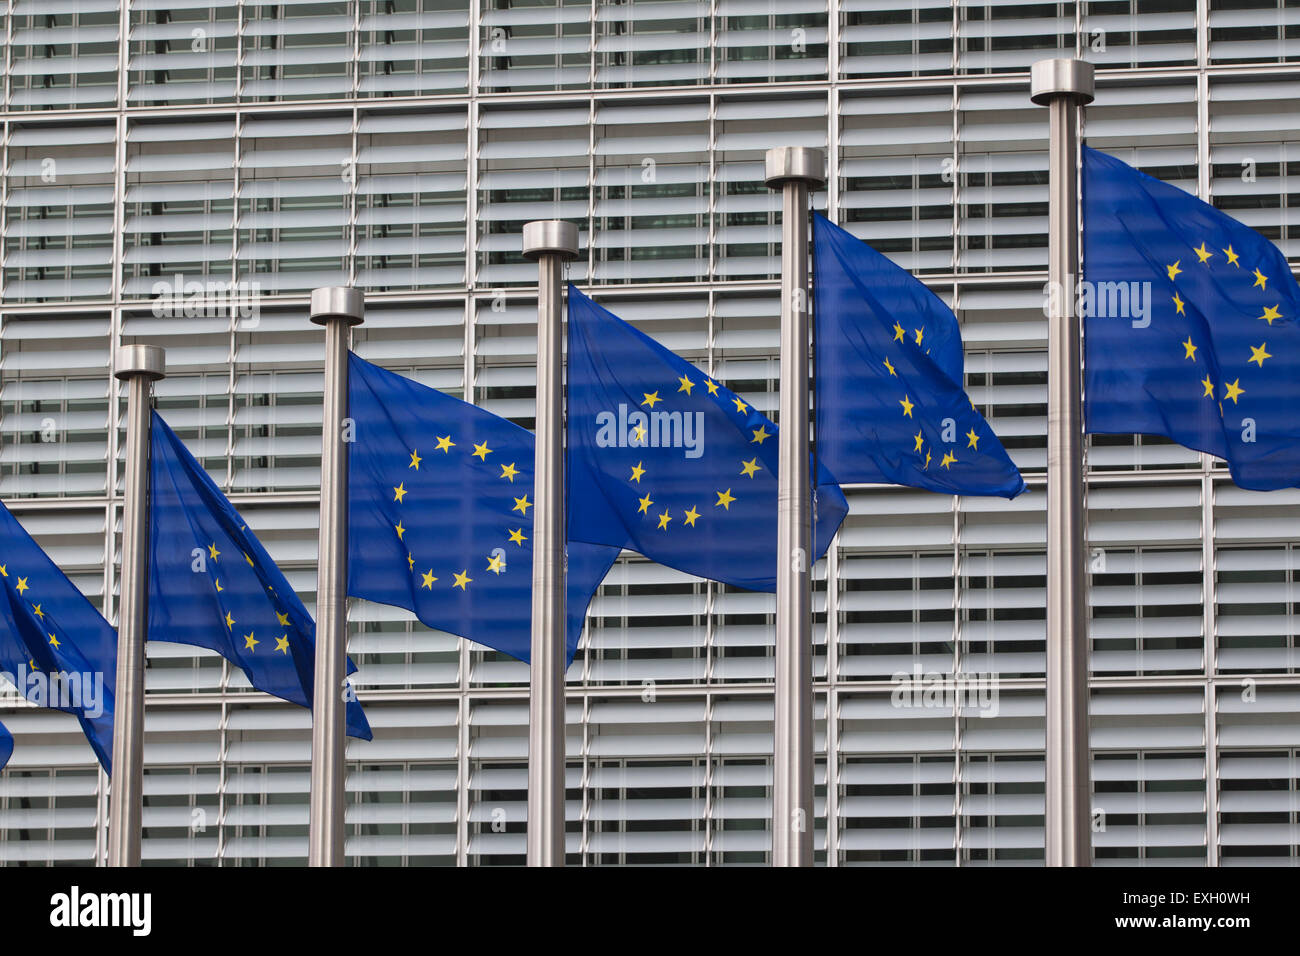 European flags in front of the Berlaymont building, headquarters of the European commission in Brussels, Belgium - Stock Image